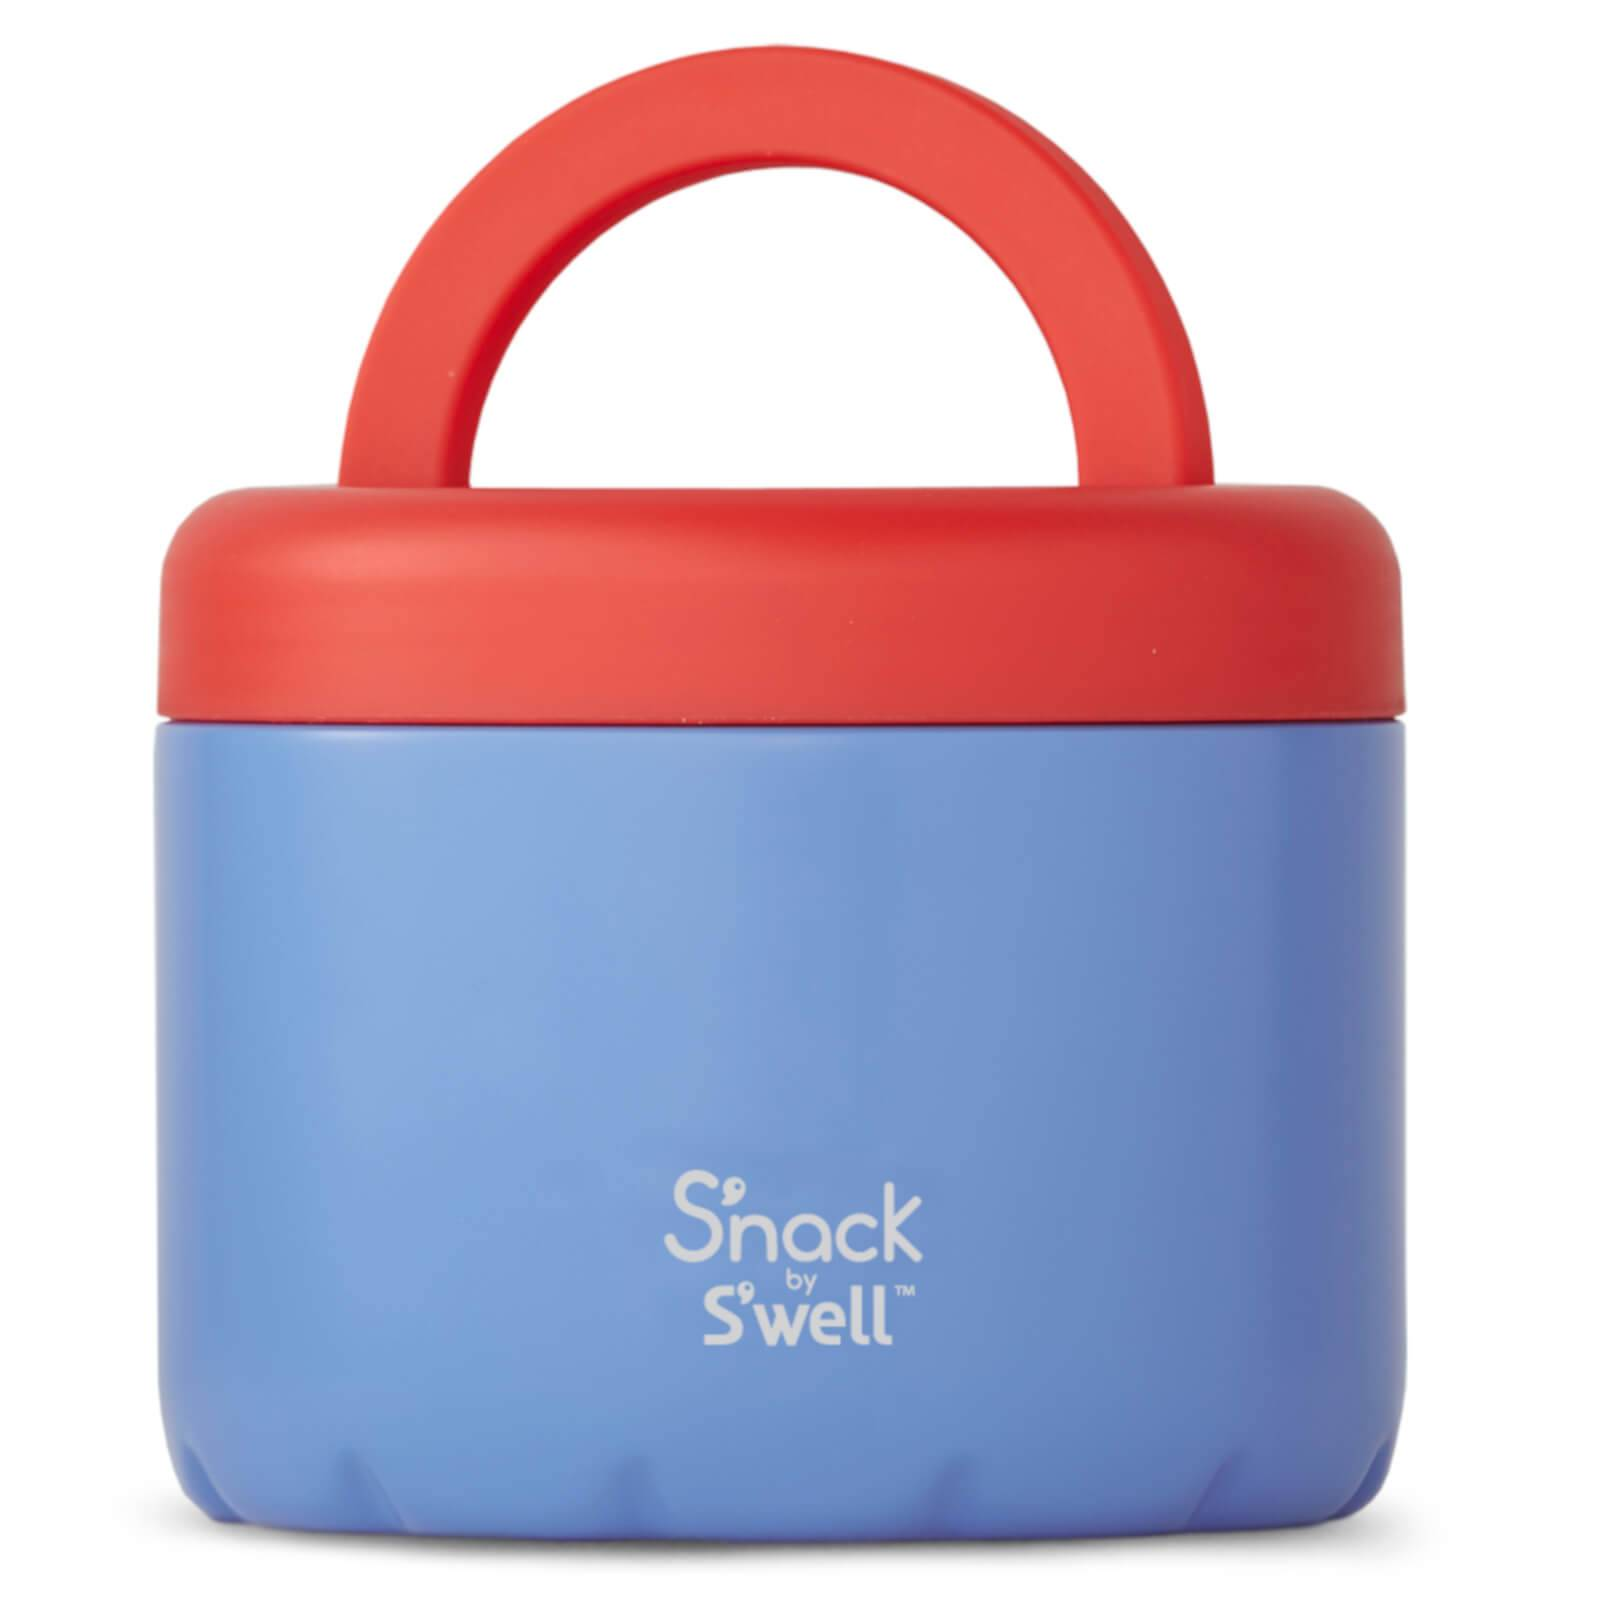 S'ip by S'well S'nack by S'well Blue Cornflower Food Container - 24oz